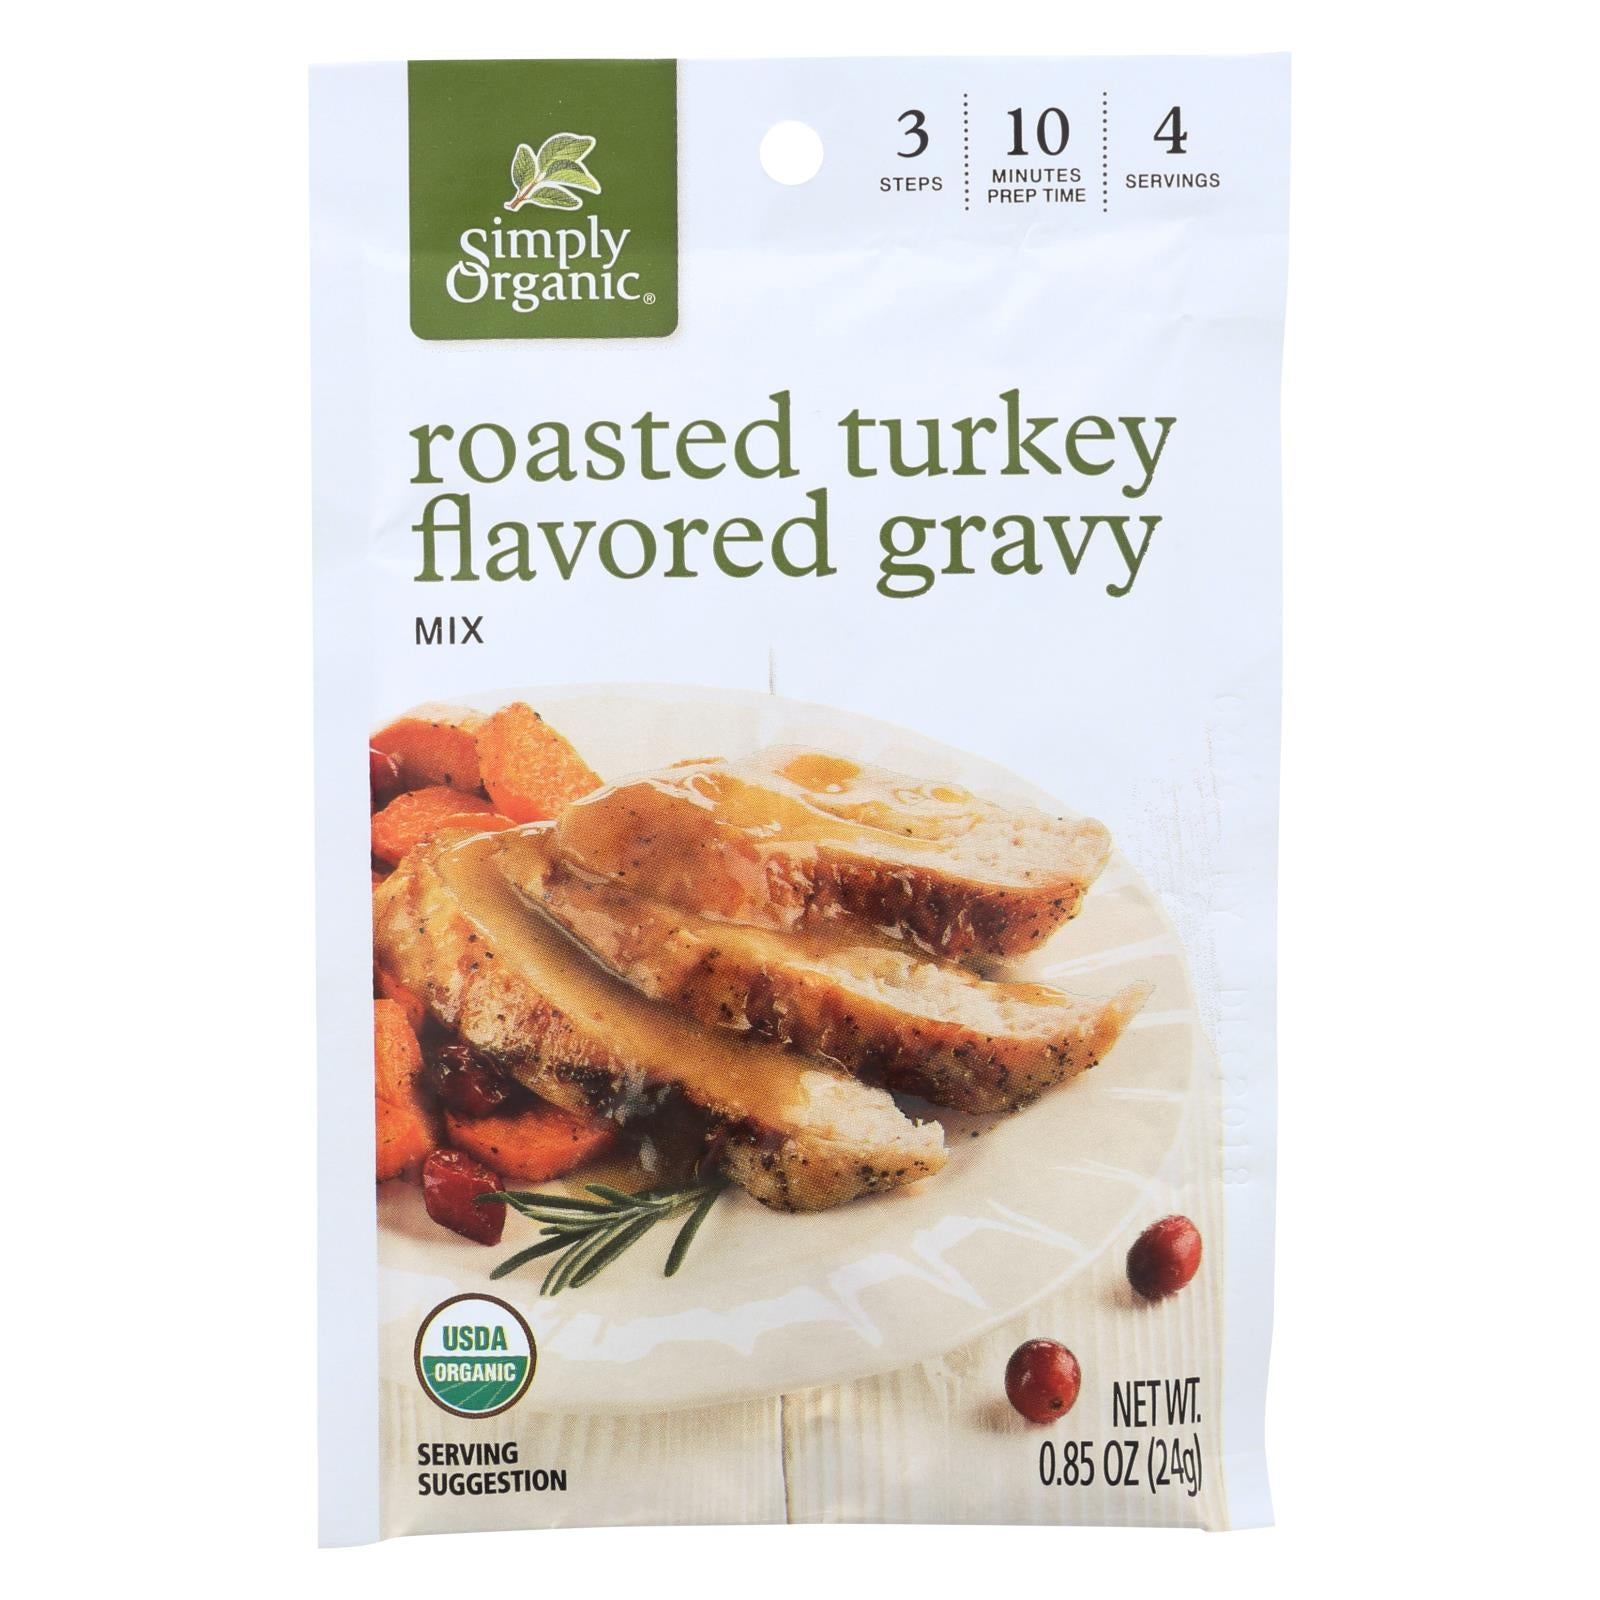 Simply Organic Roasted Turkey Flavored Gravy Seasoning Mix - Case Of 12 - 0.85 Oz. HG0916361